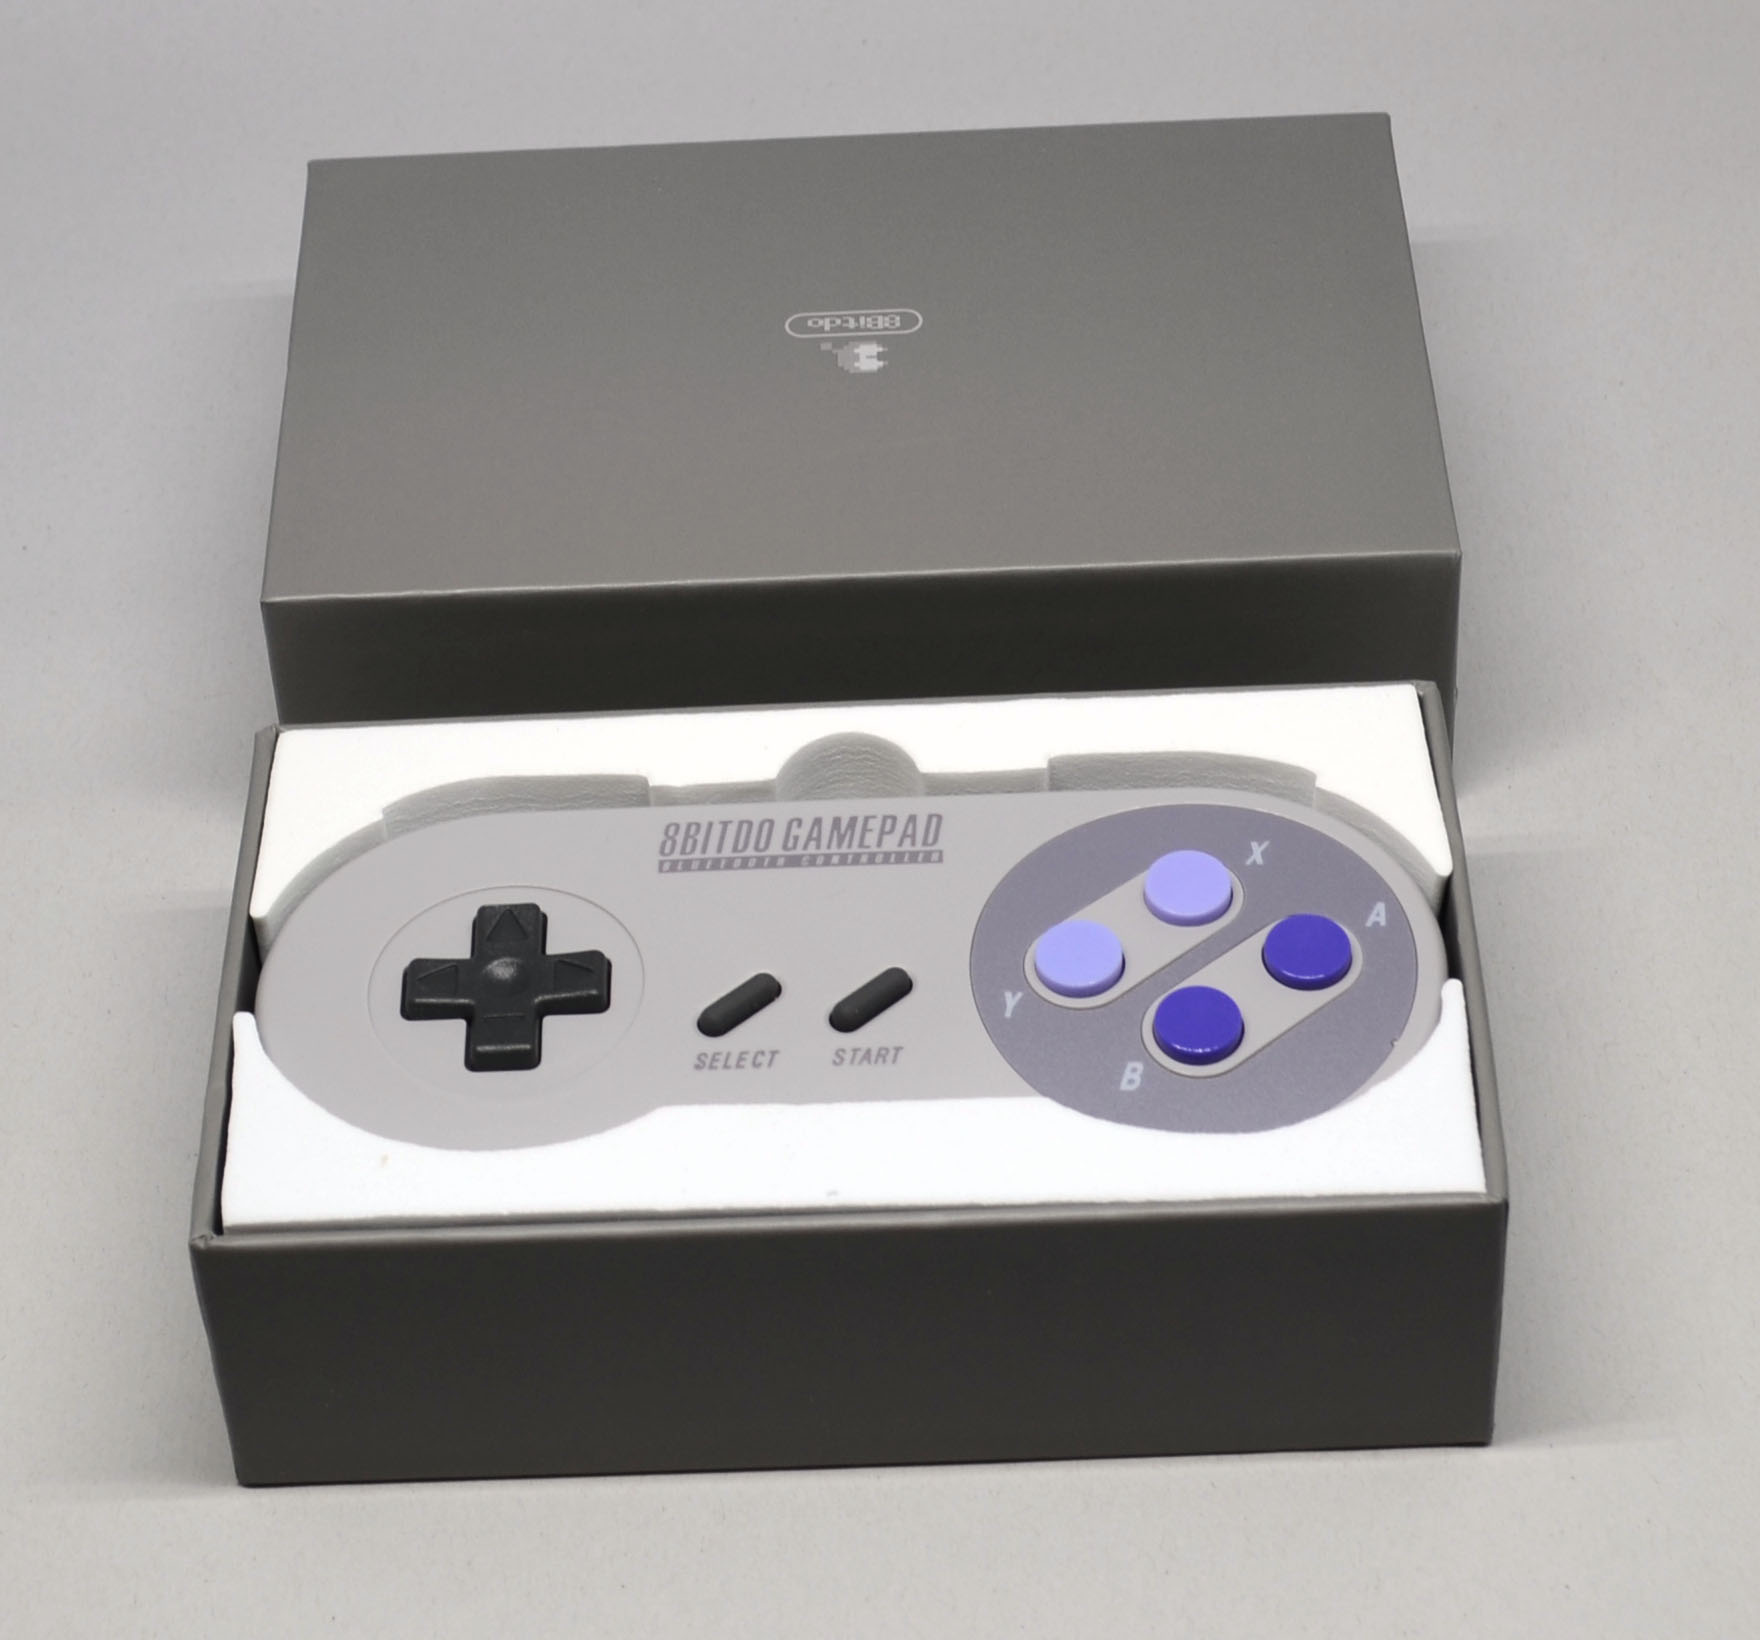 Opening the SNES30 GamePad box.